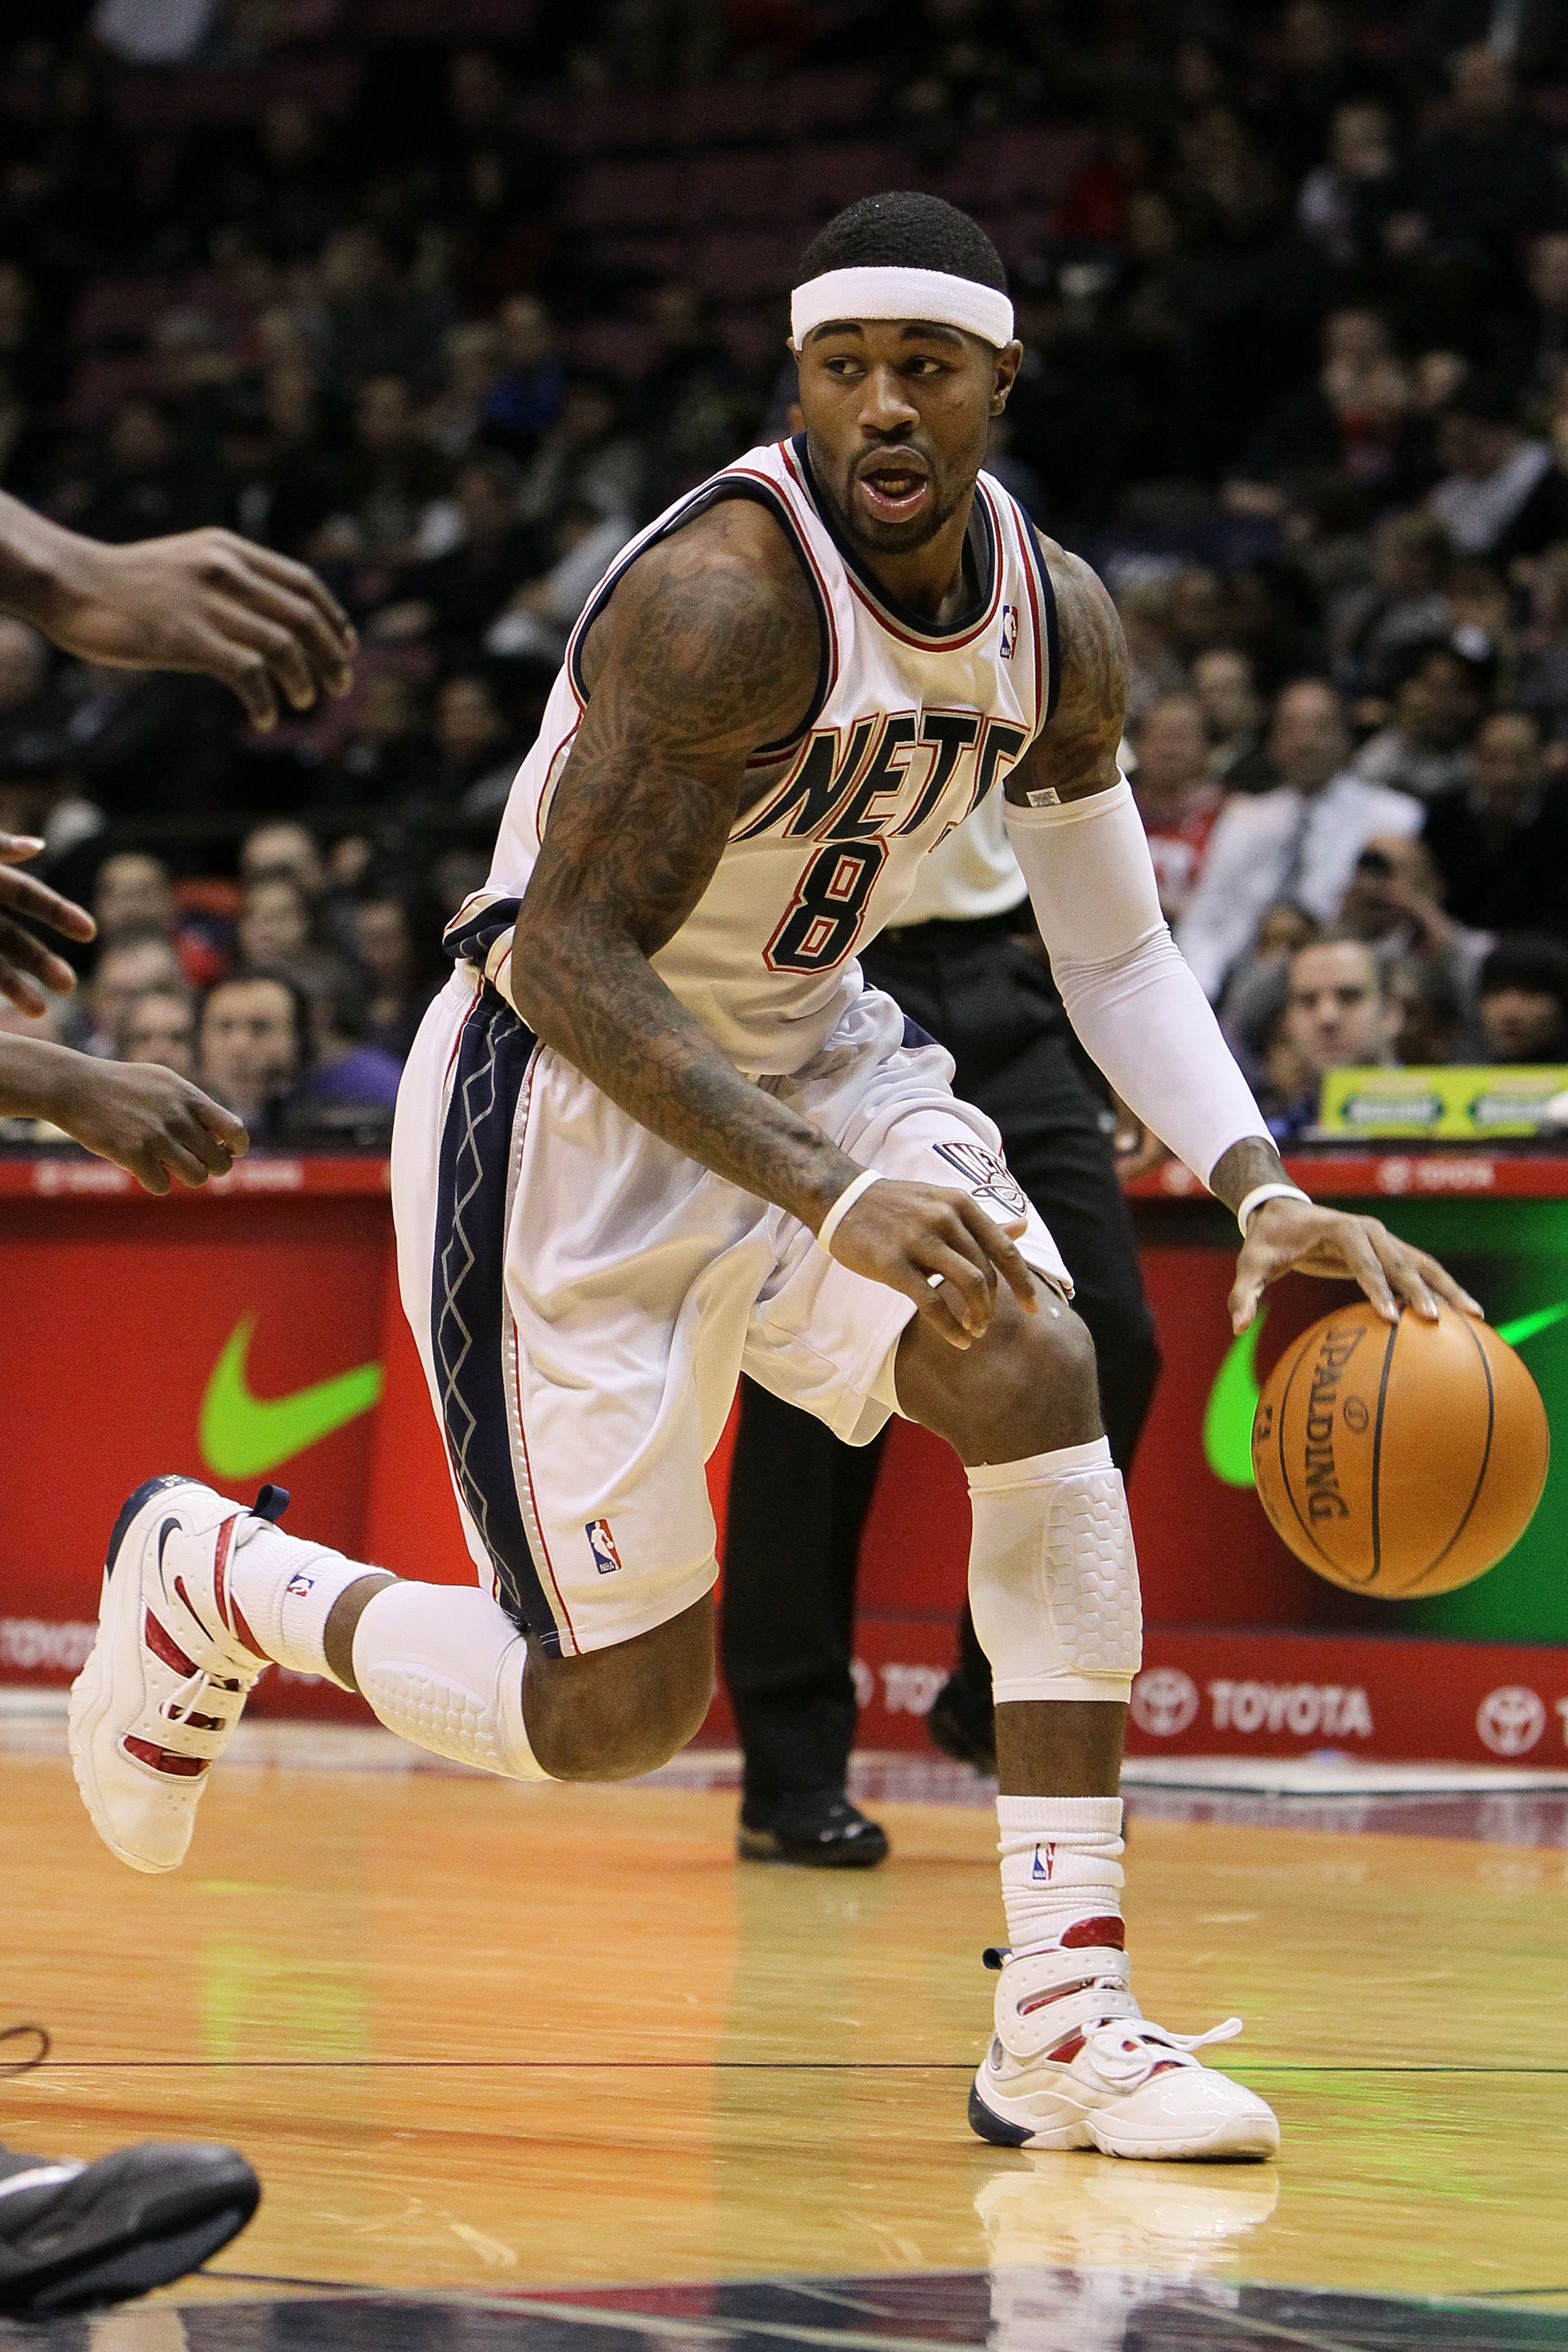 EAST RUTHERFORD, NJ - DECEMBER 16:  Terrence Williams #8 of the New Jersey Nets in action against The Utah Jazz during their game on December 16th, 2009 at The Izod Center in East Rutherford, New Jersey.  NOTE TO USER: User expressly acknowledges and agre